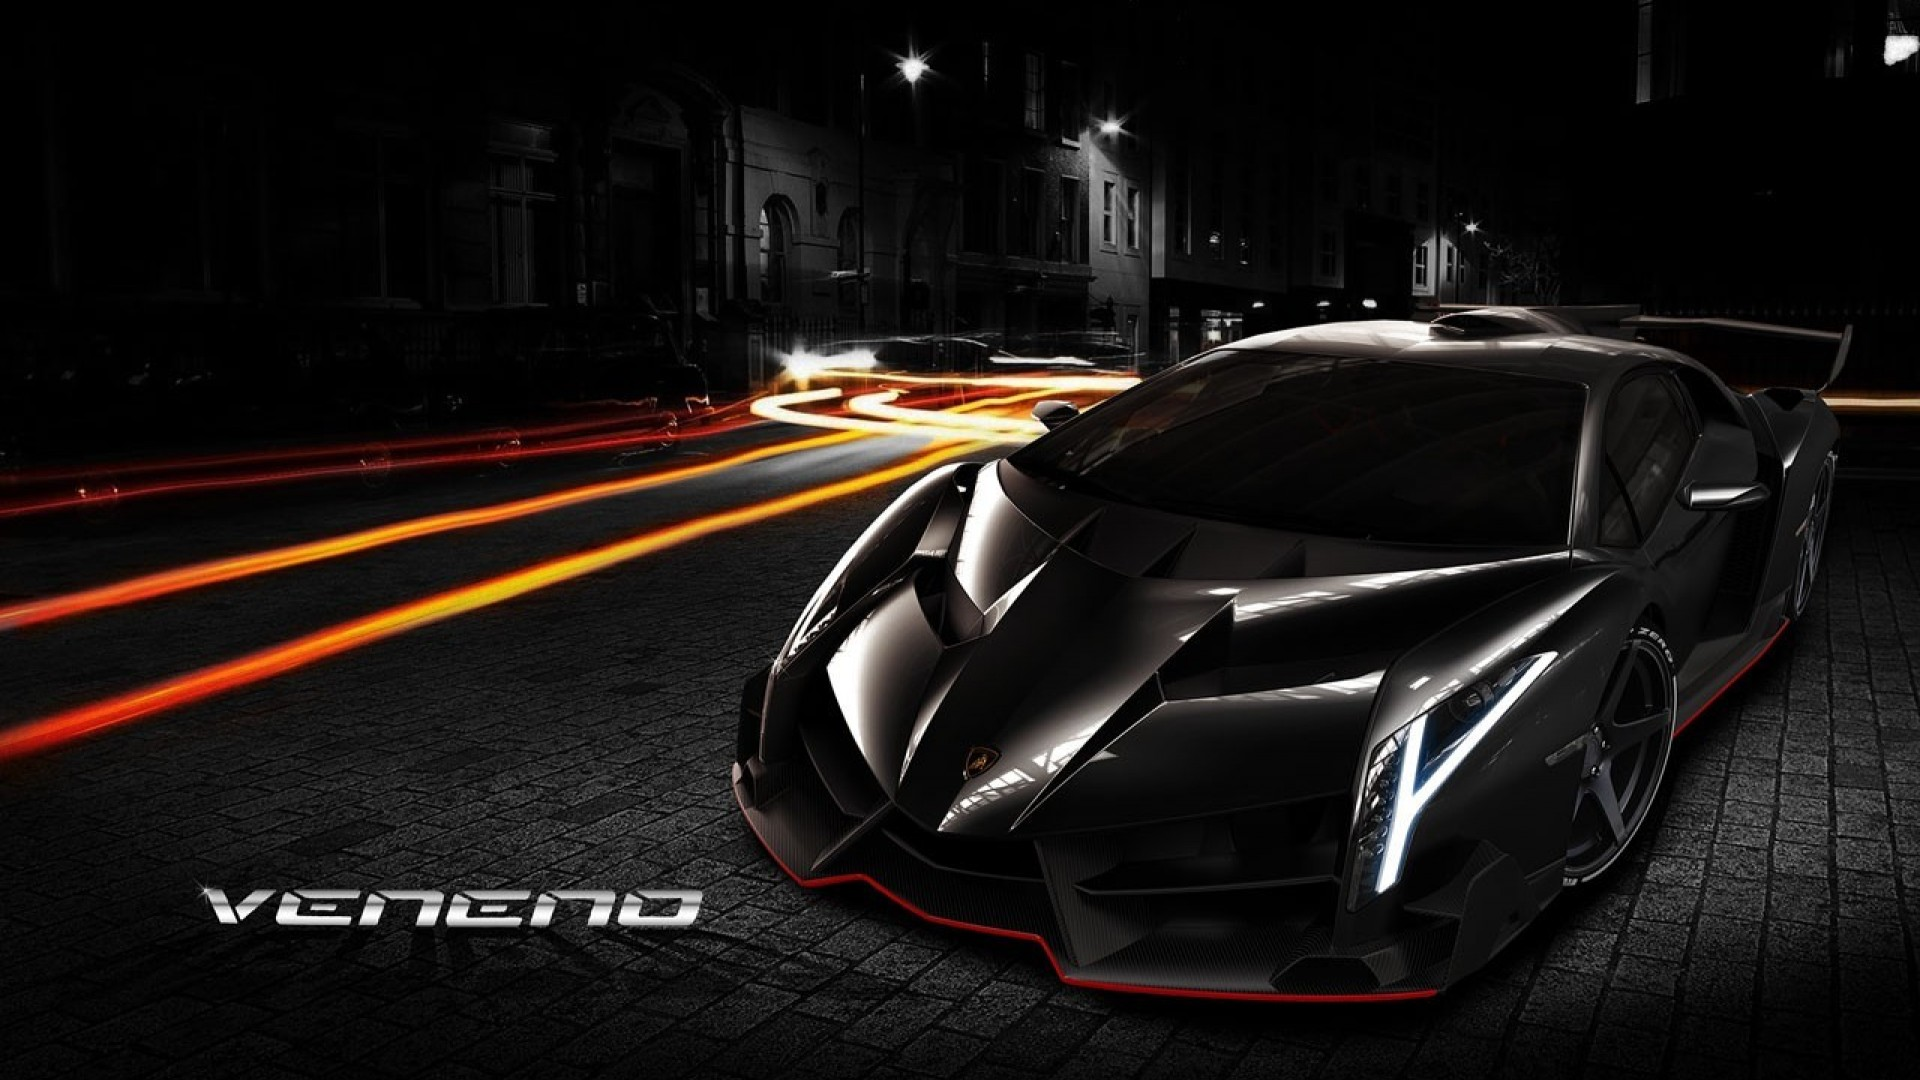 Lamborghini Veneno Backgrounds Hd Wallpaper Wiki